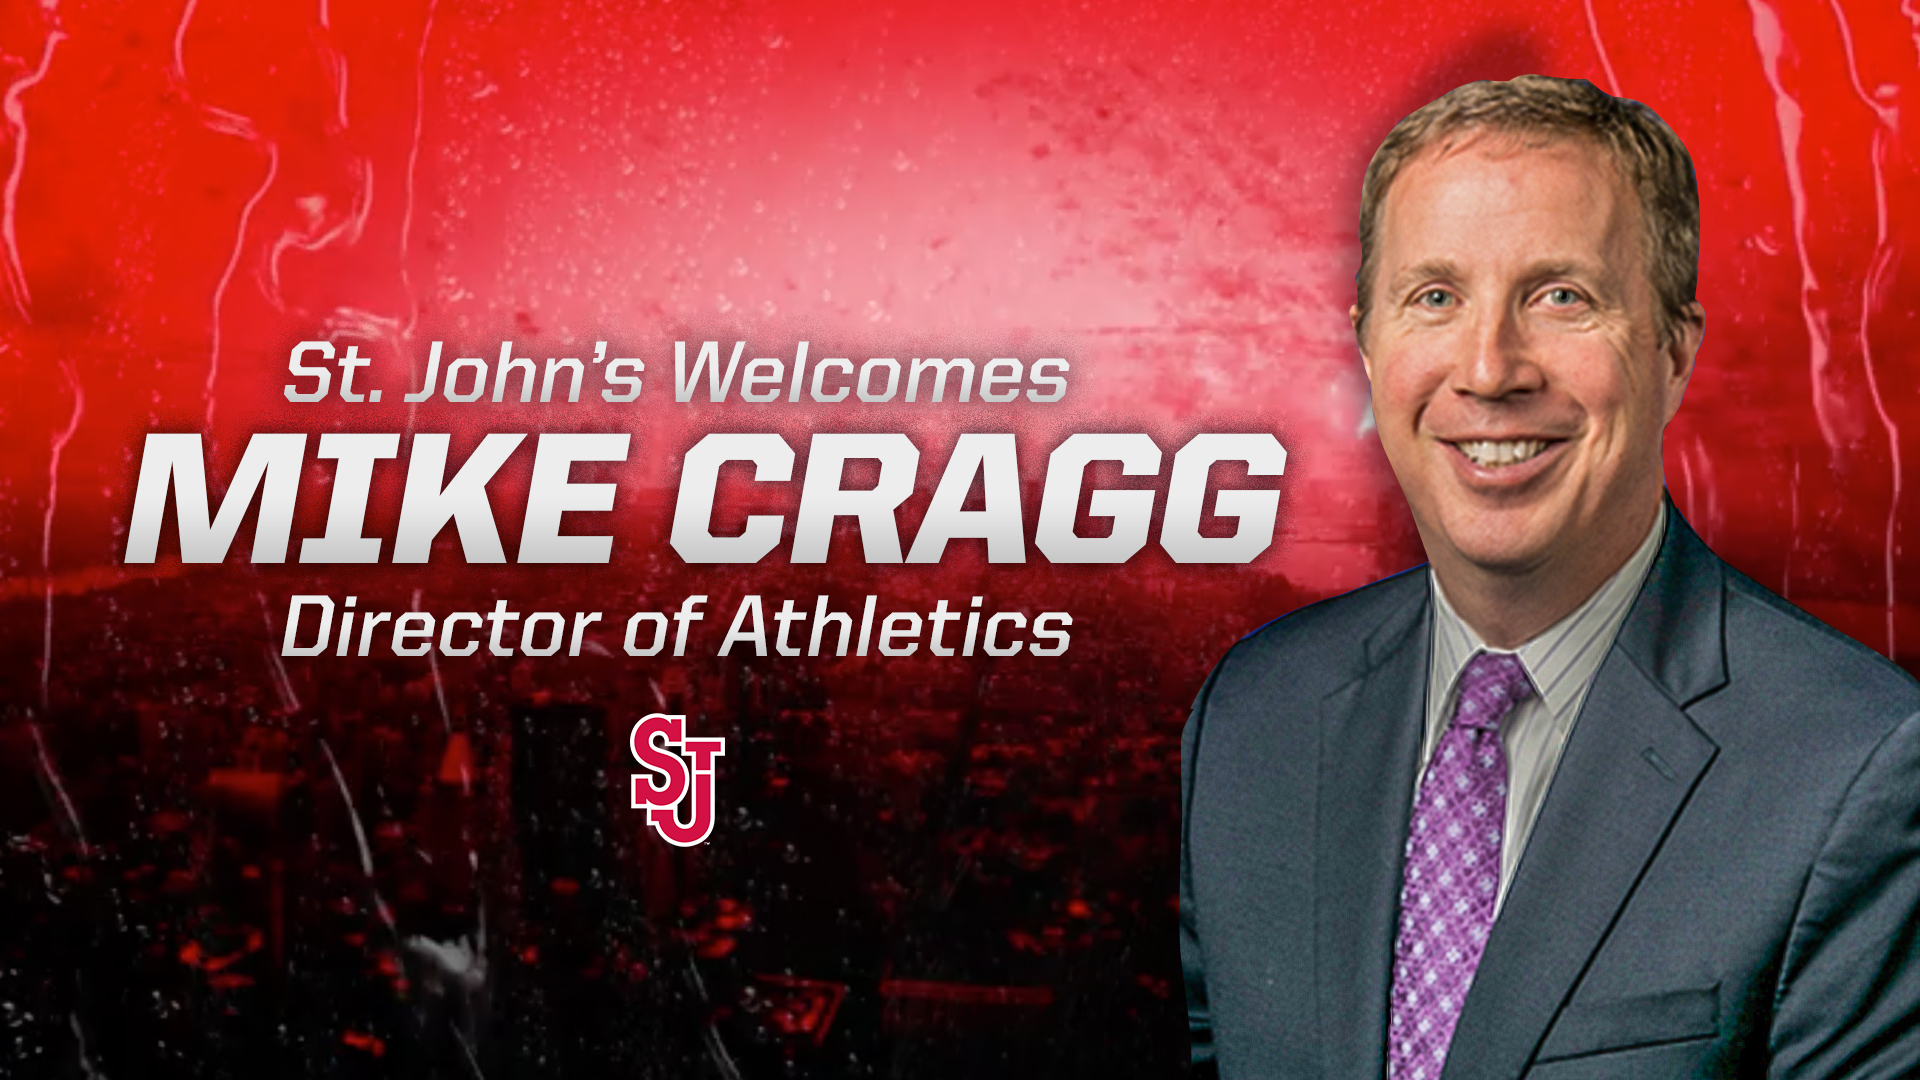 Mike Cragg Post Press Conference Video Interview